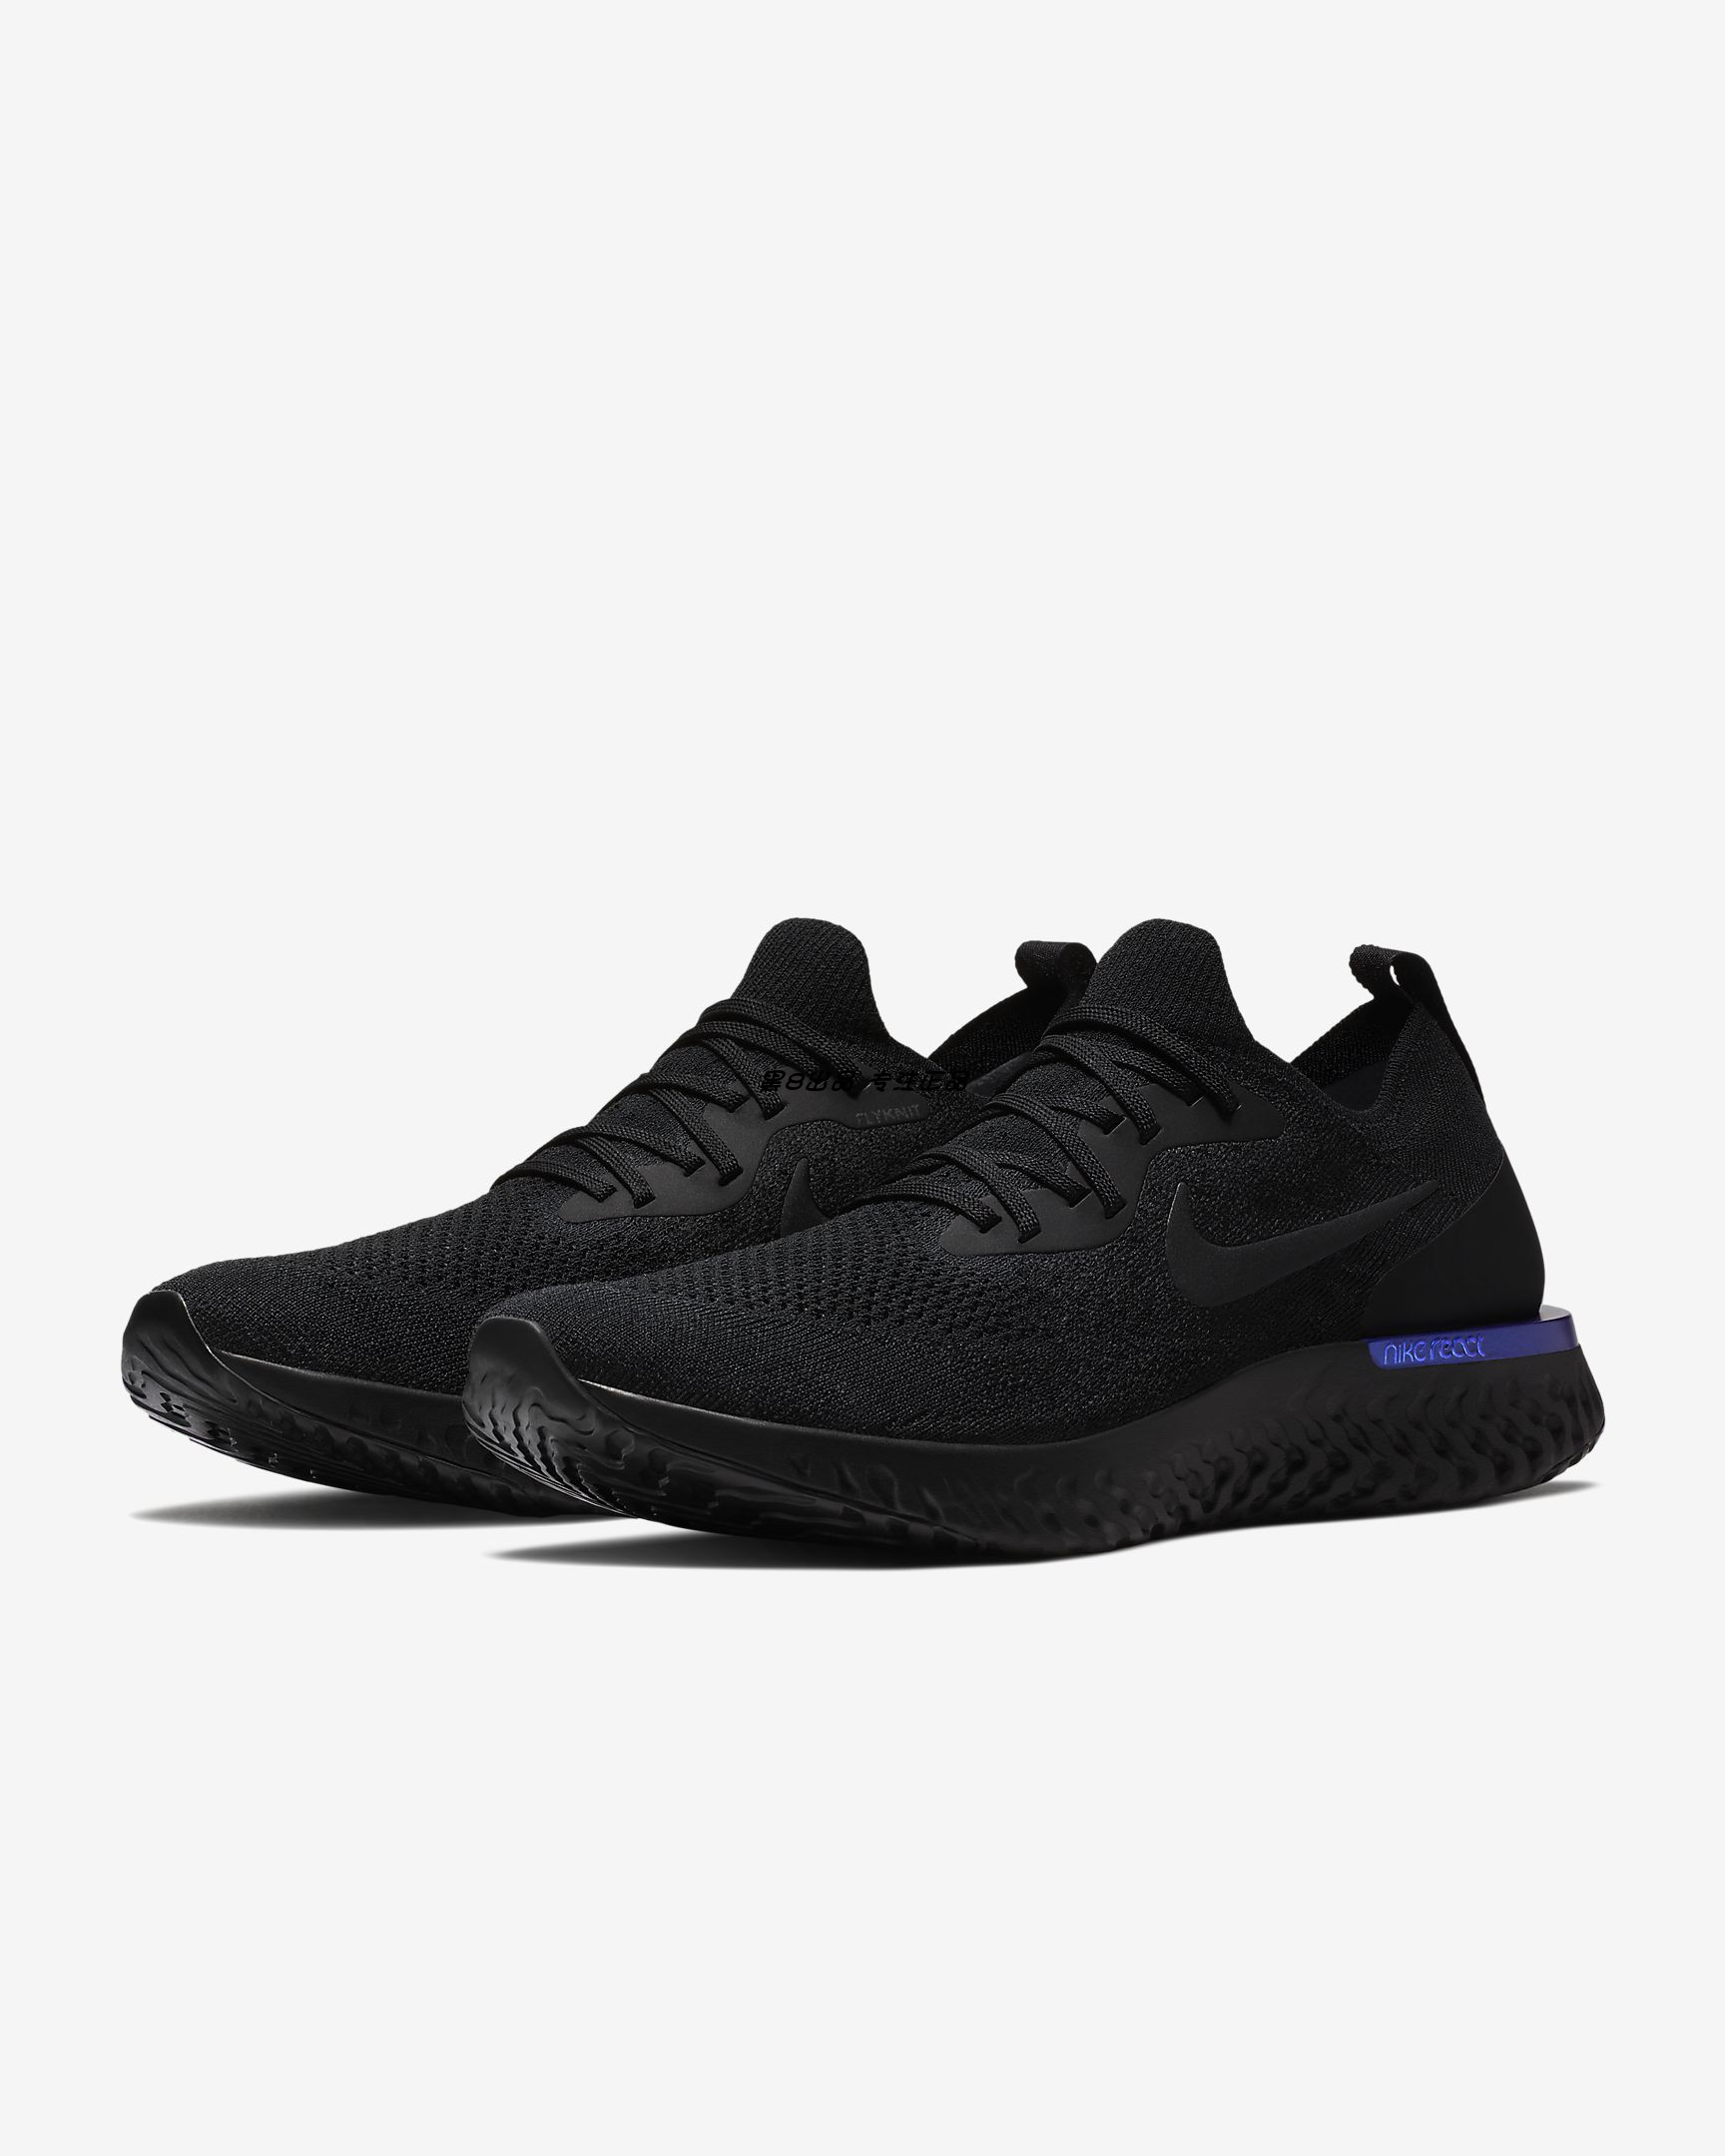 Nike Epic React Flyknit Black Blue Shoes